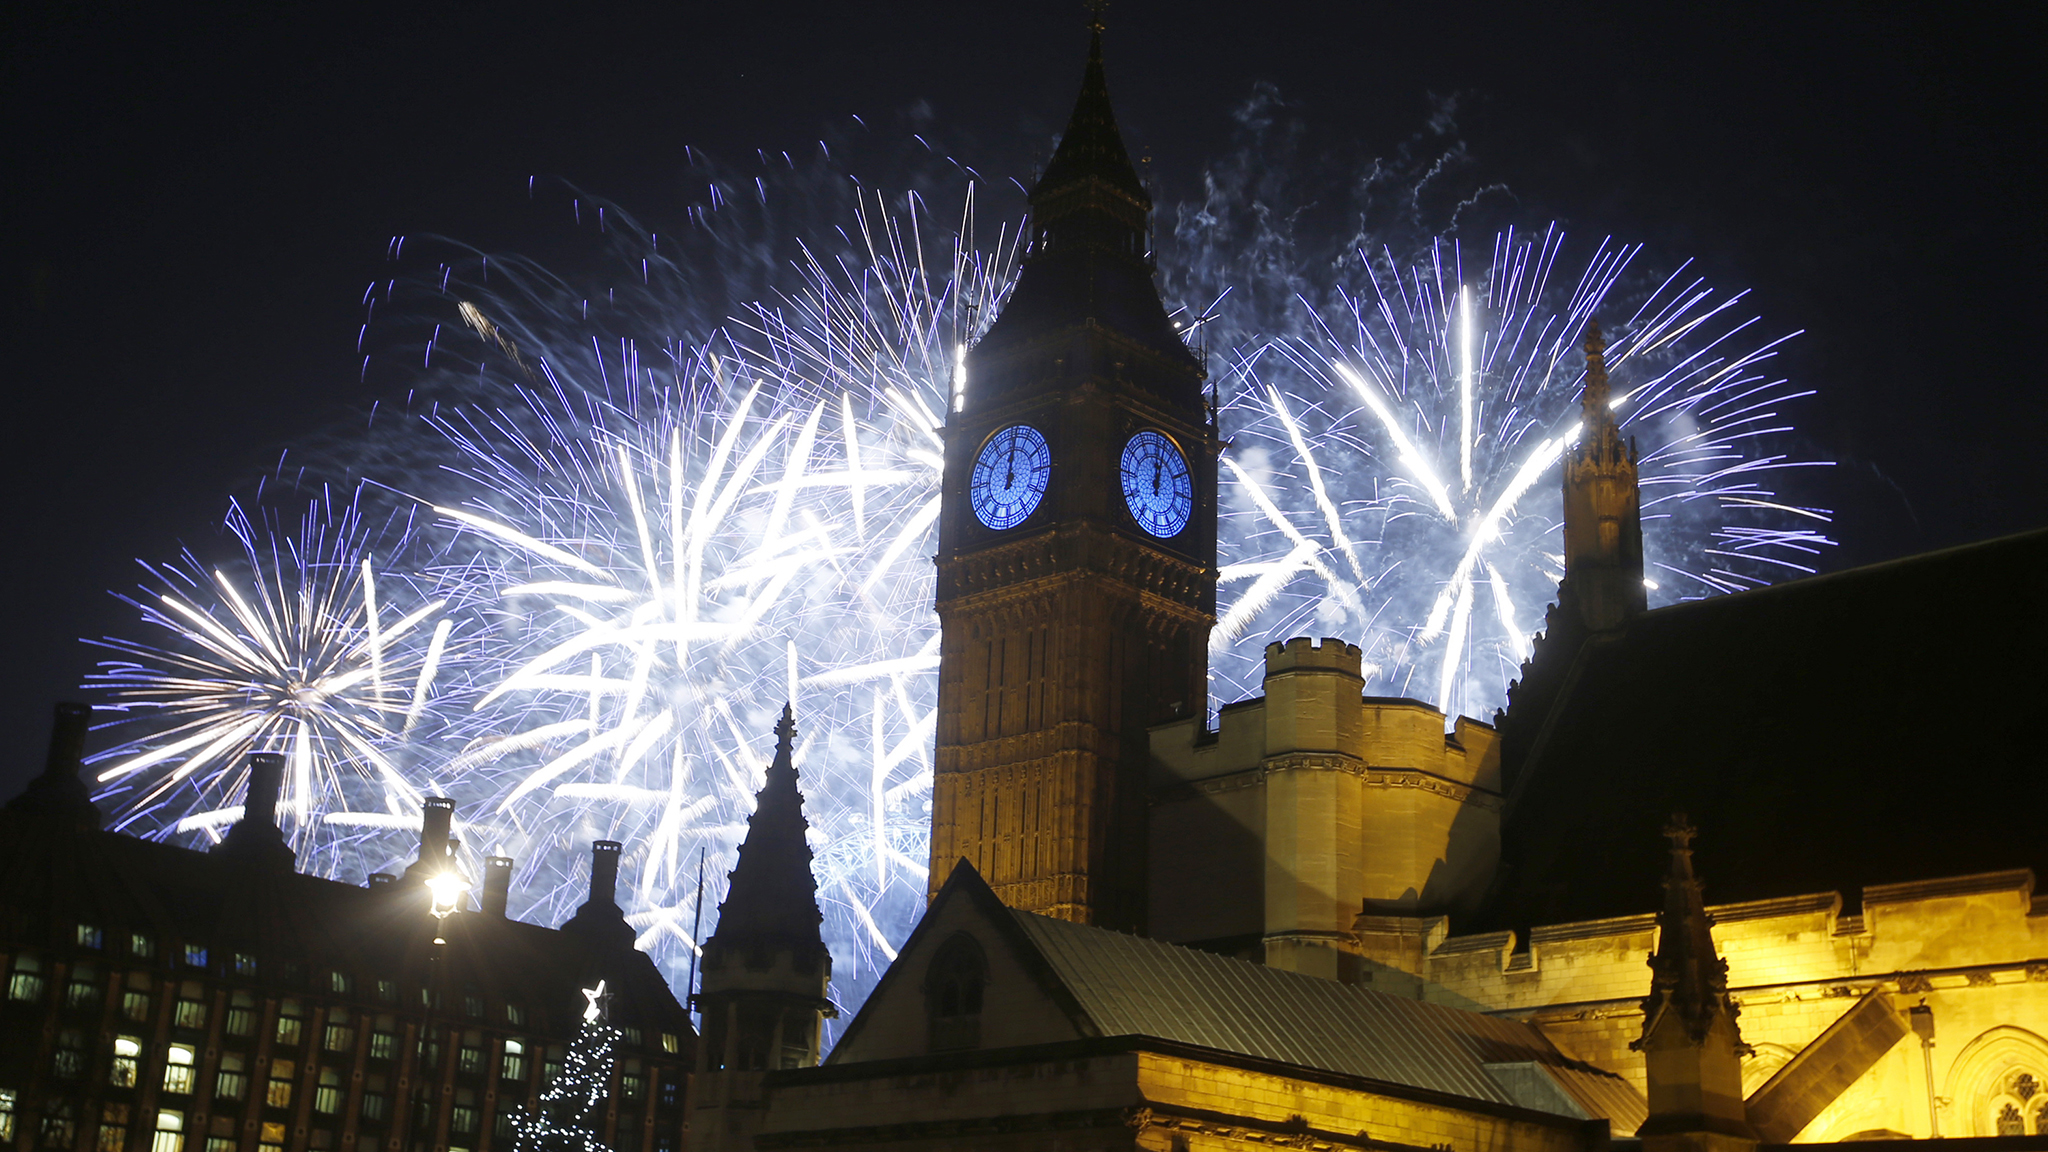 Fireworks explode over the River Thames and the Palace of Westminster as the New Year's Day celebrations begin in London.